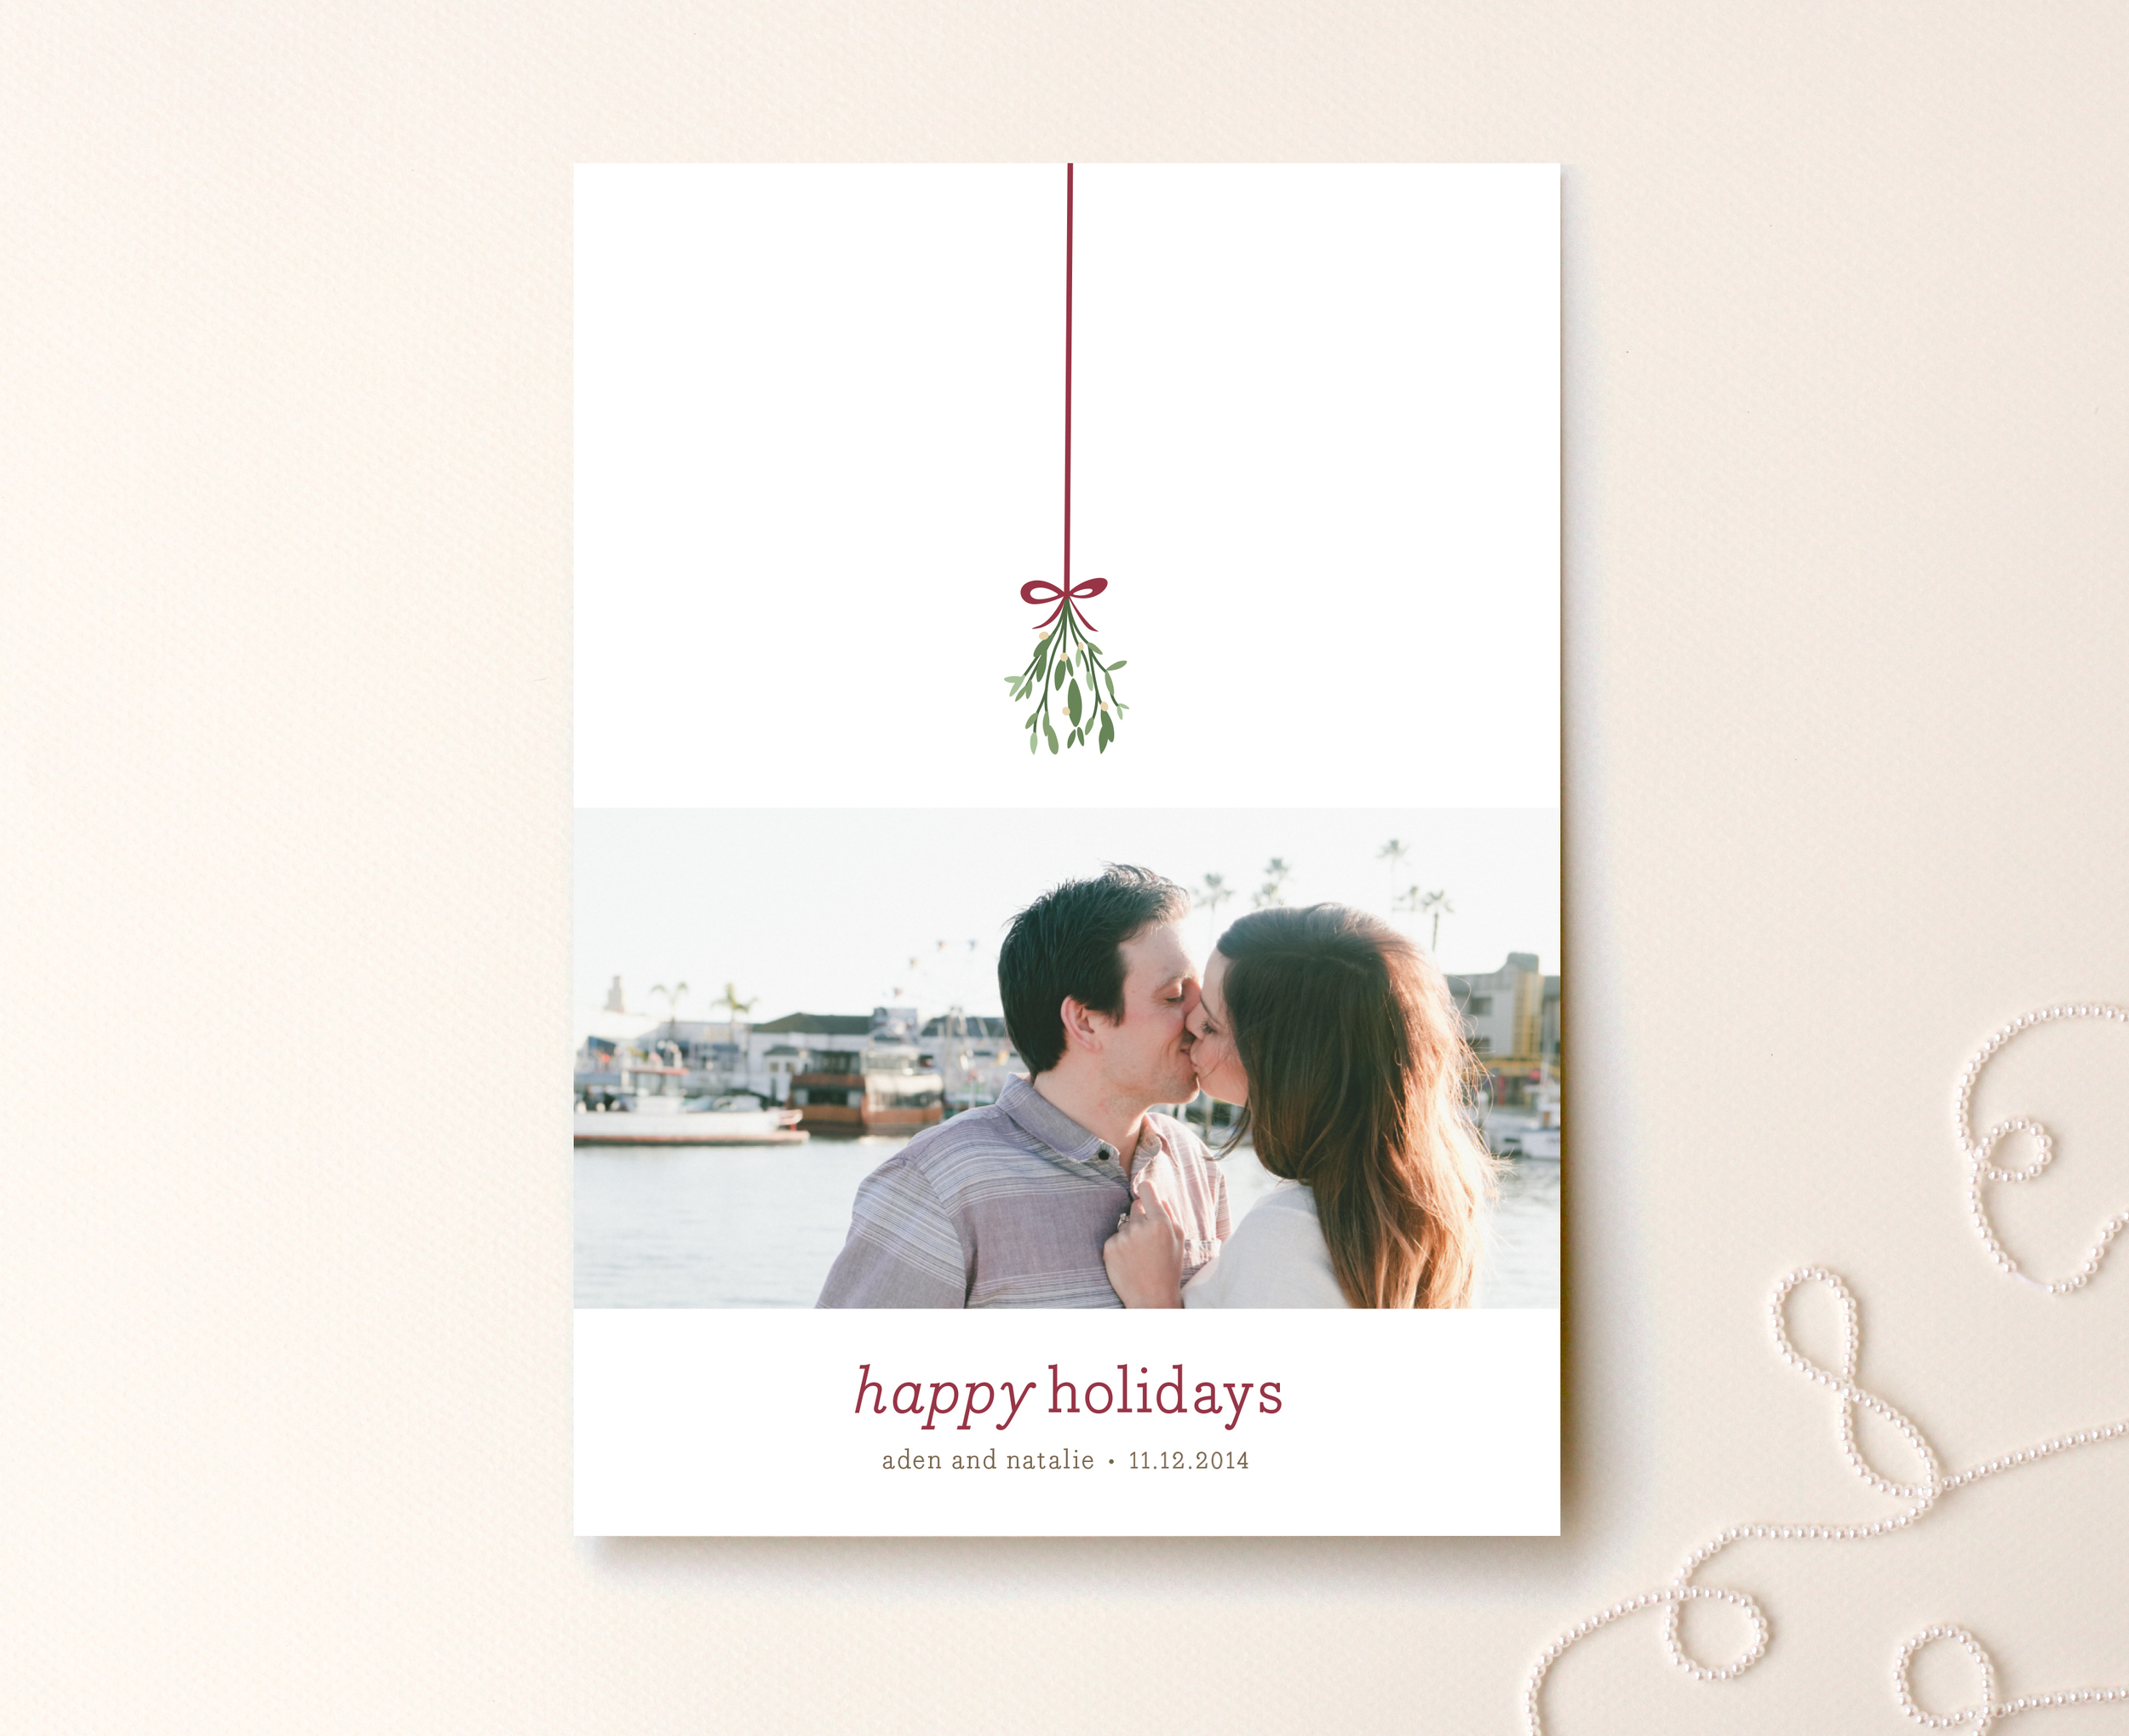 Mistletoe Kiss Holiday Photo Card by roxy for Minted 2.jpg